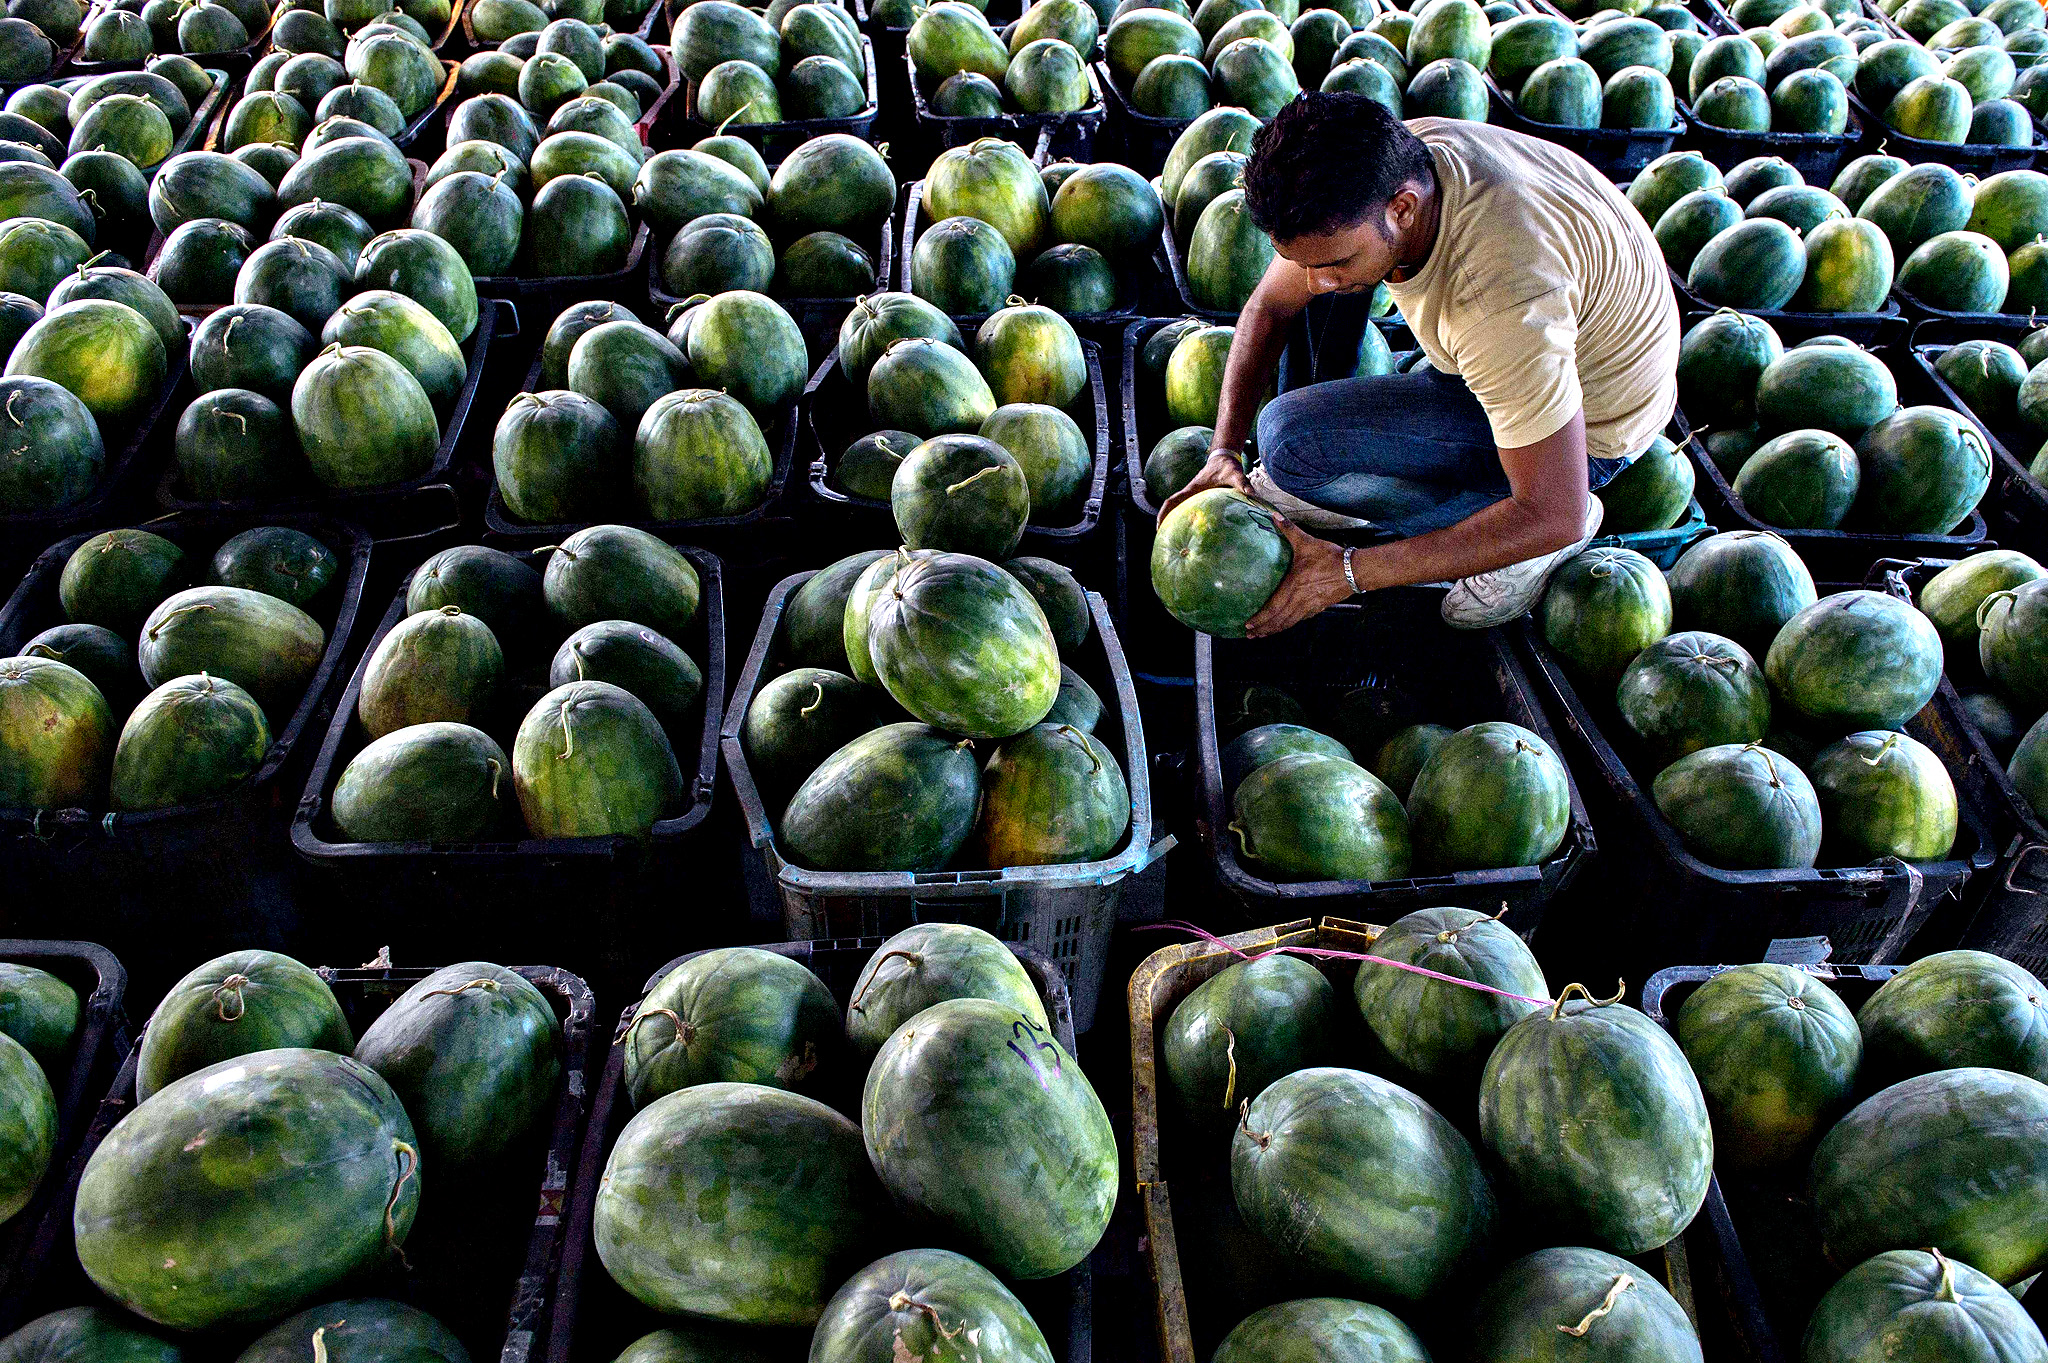 A worker inspects stocks of watermelons at a wholesale market in Selayang, near Kuala Lumpur on September 3, 2014. Malaysia's economy grew a better-than-expected 6.4 percent in the year's second quarter on the back of higher exports and strong private domestic demand, the central bank said August 15.